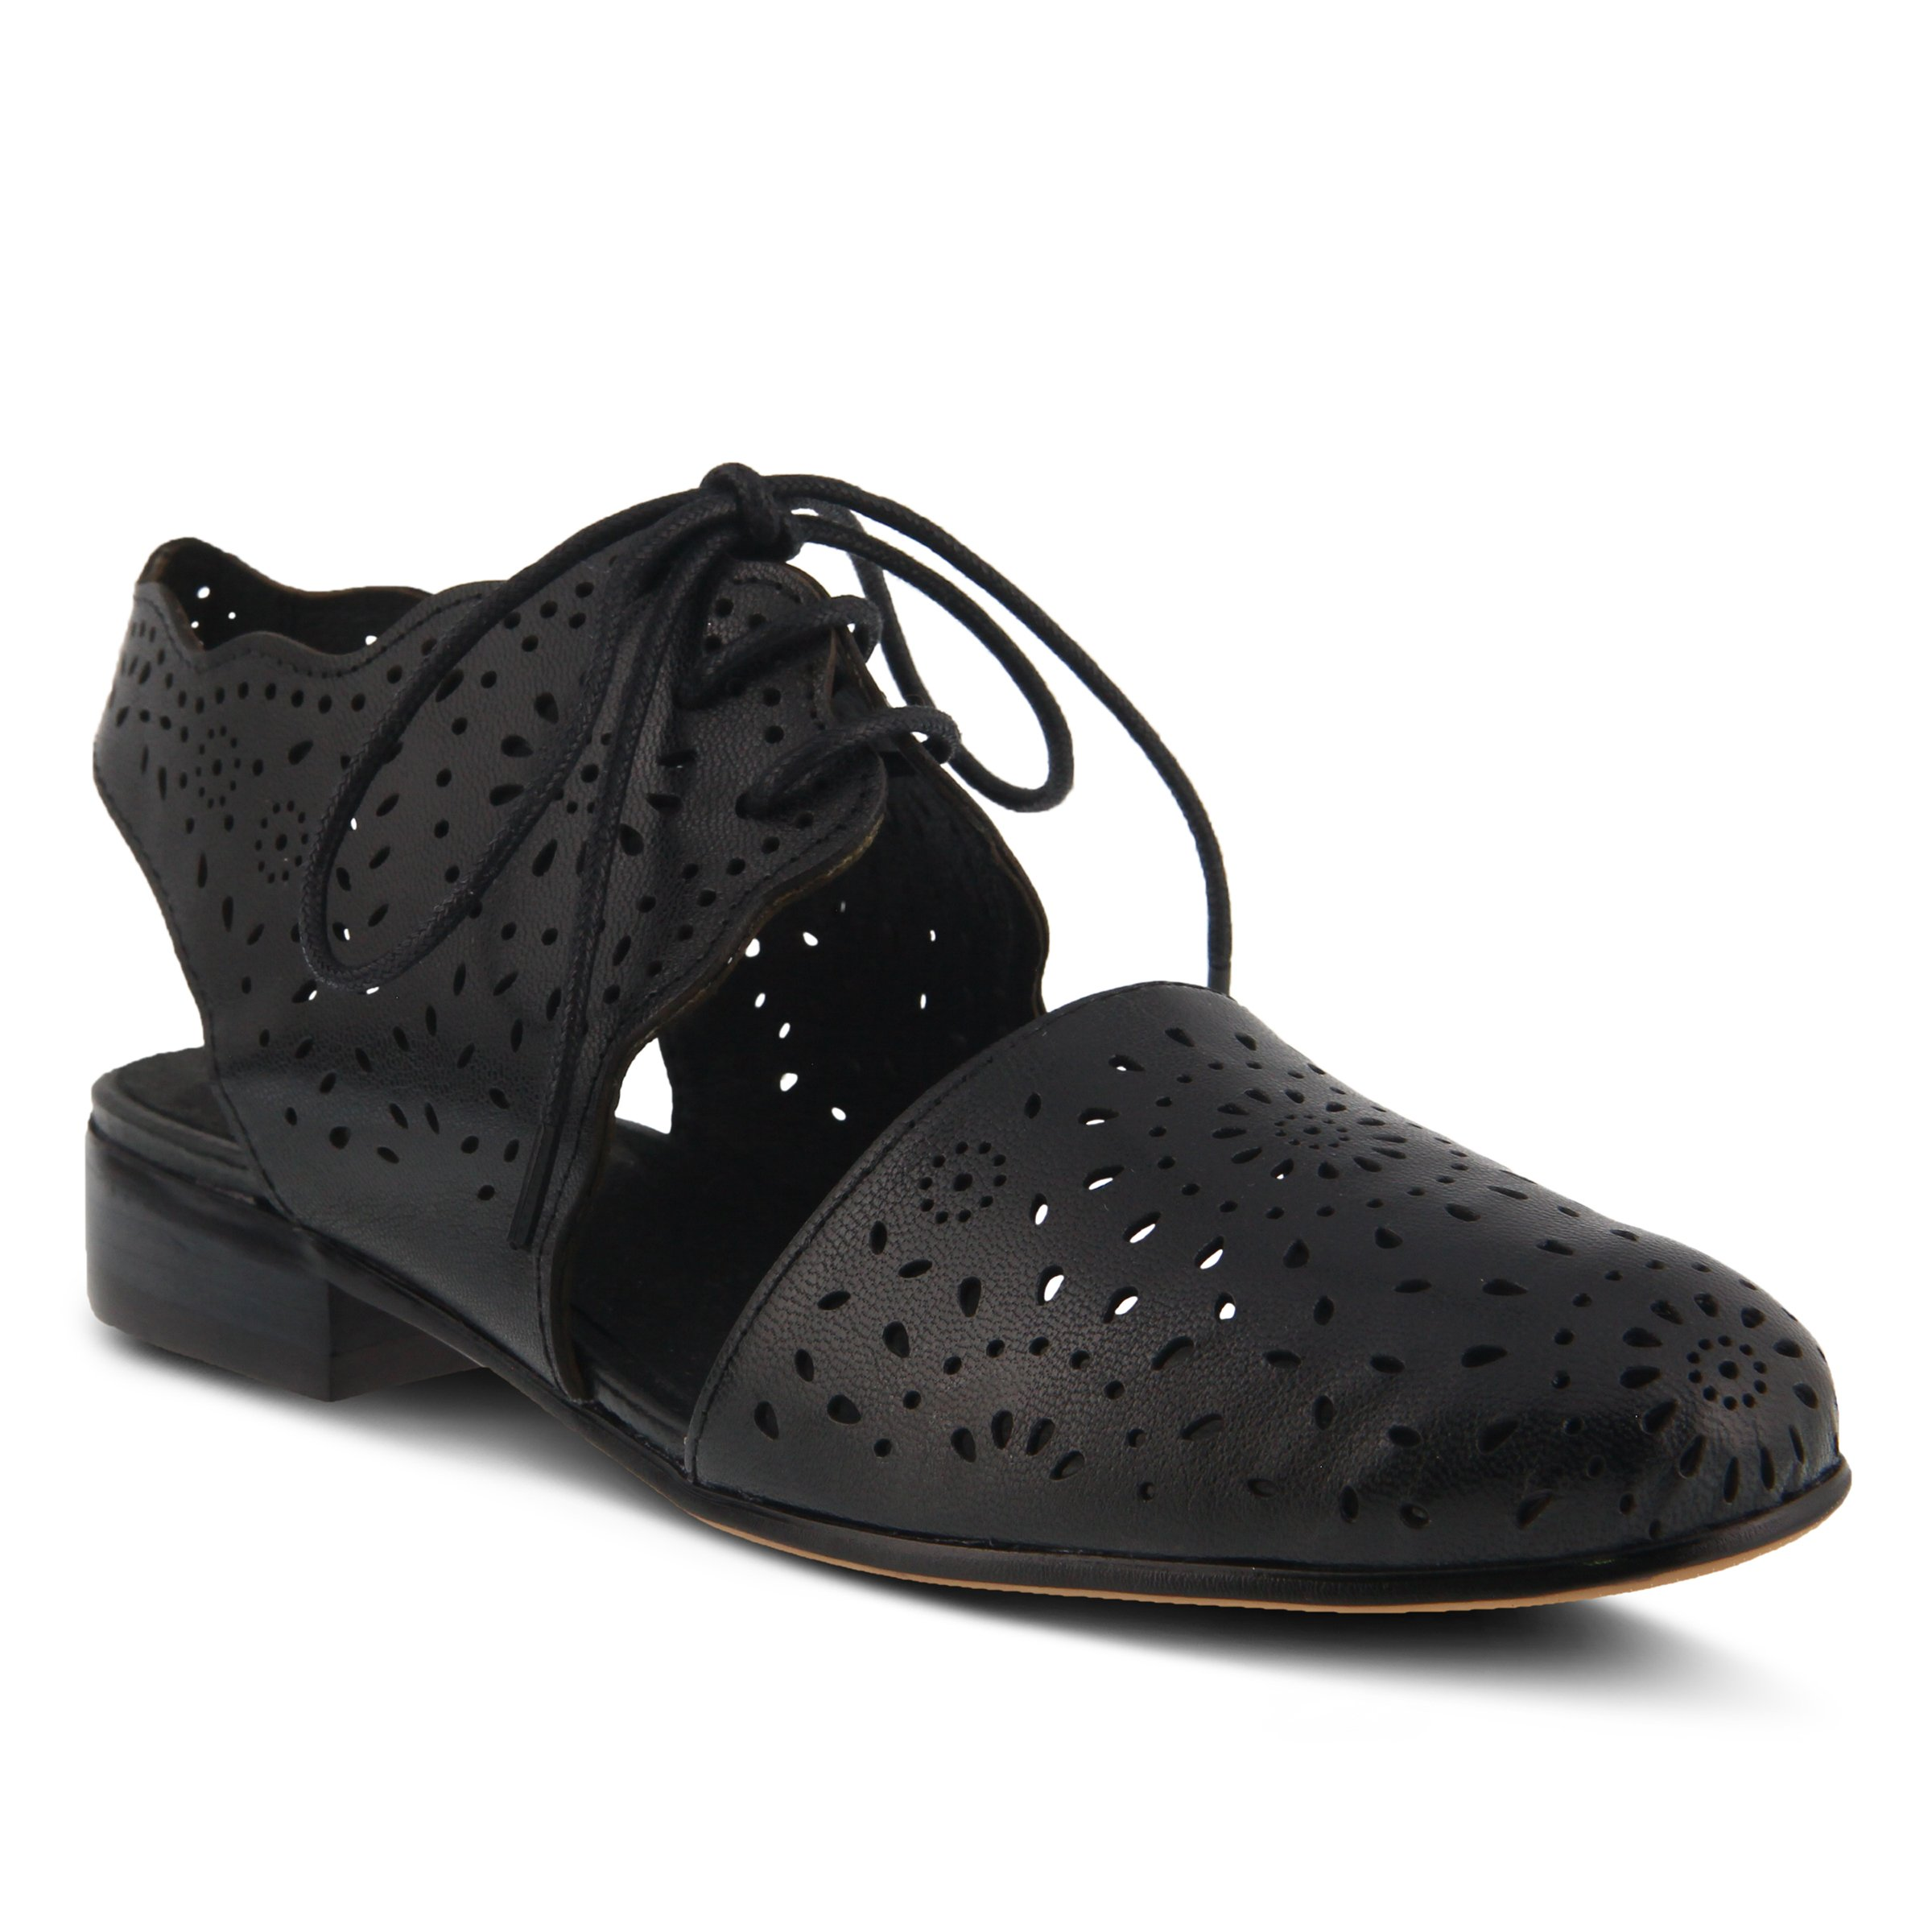 Spring Step Women's Style Neroh Black EURO Size 42 Leather Lace-Up Shoe